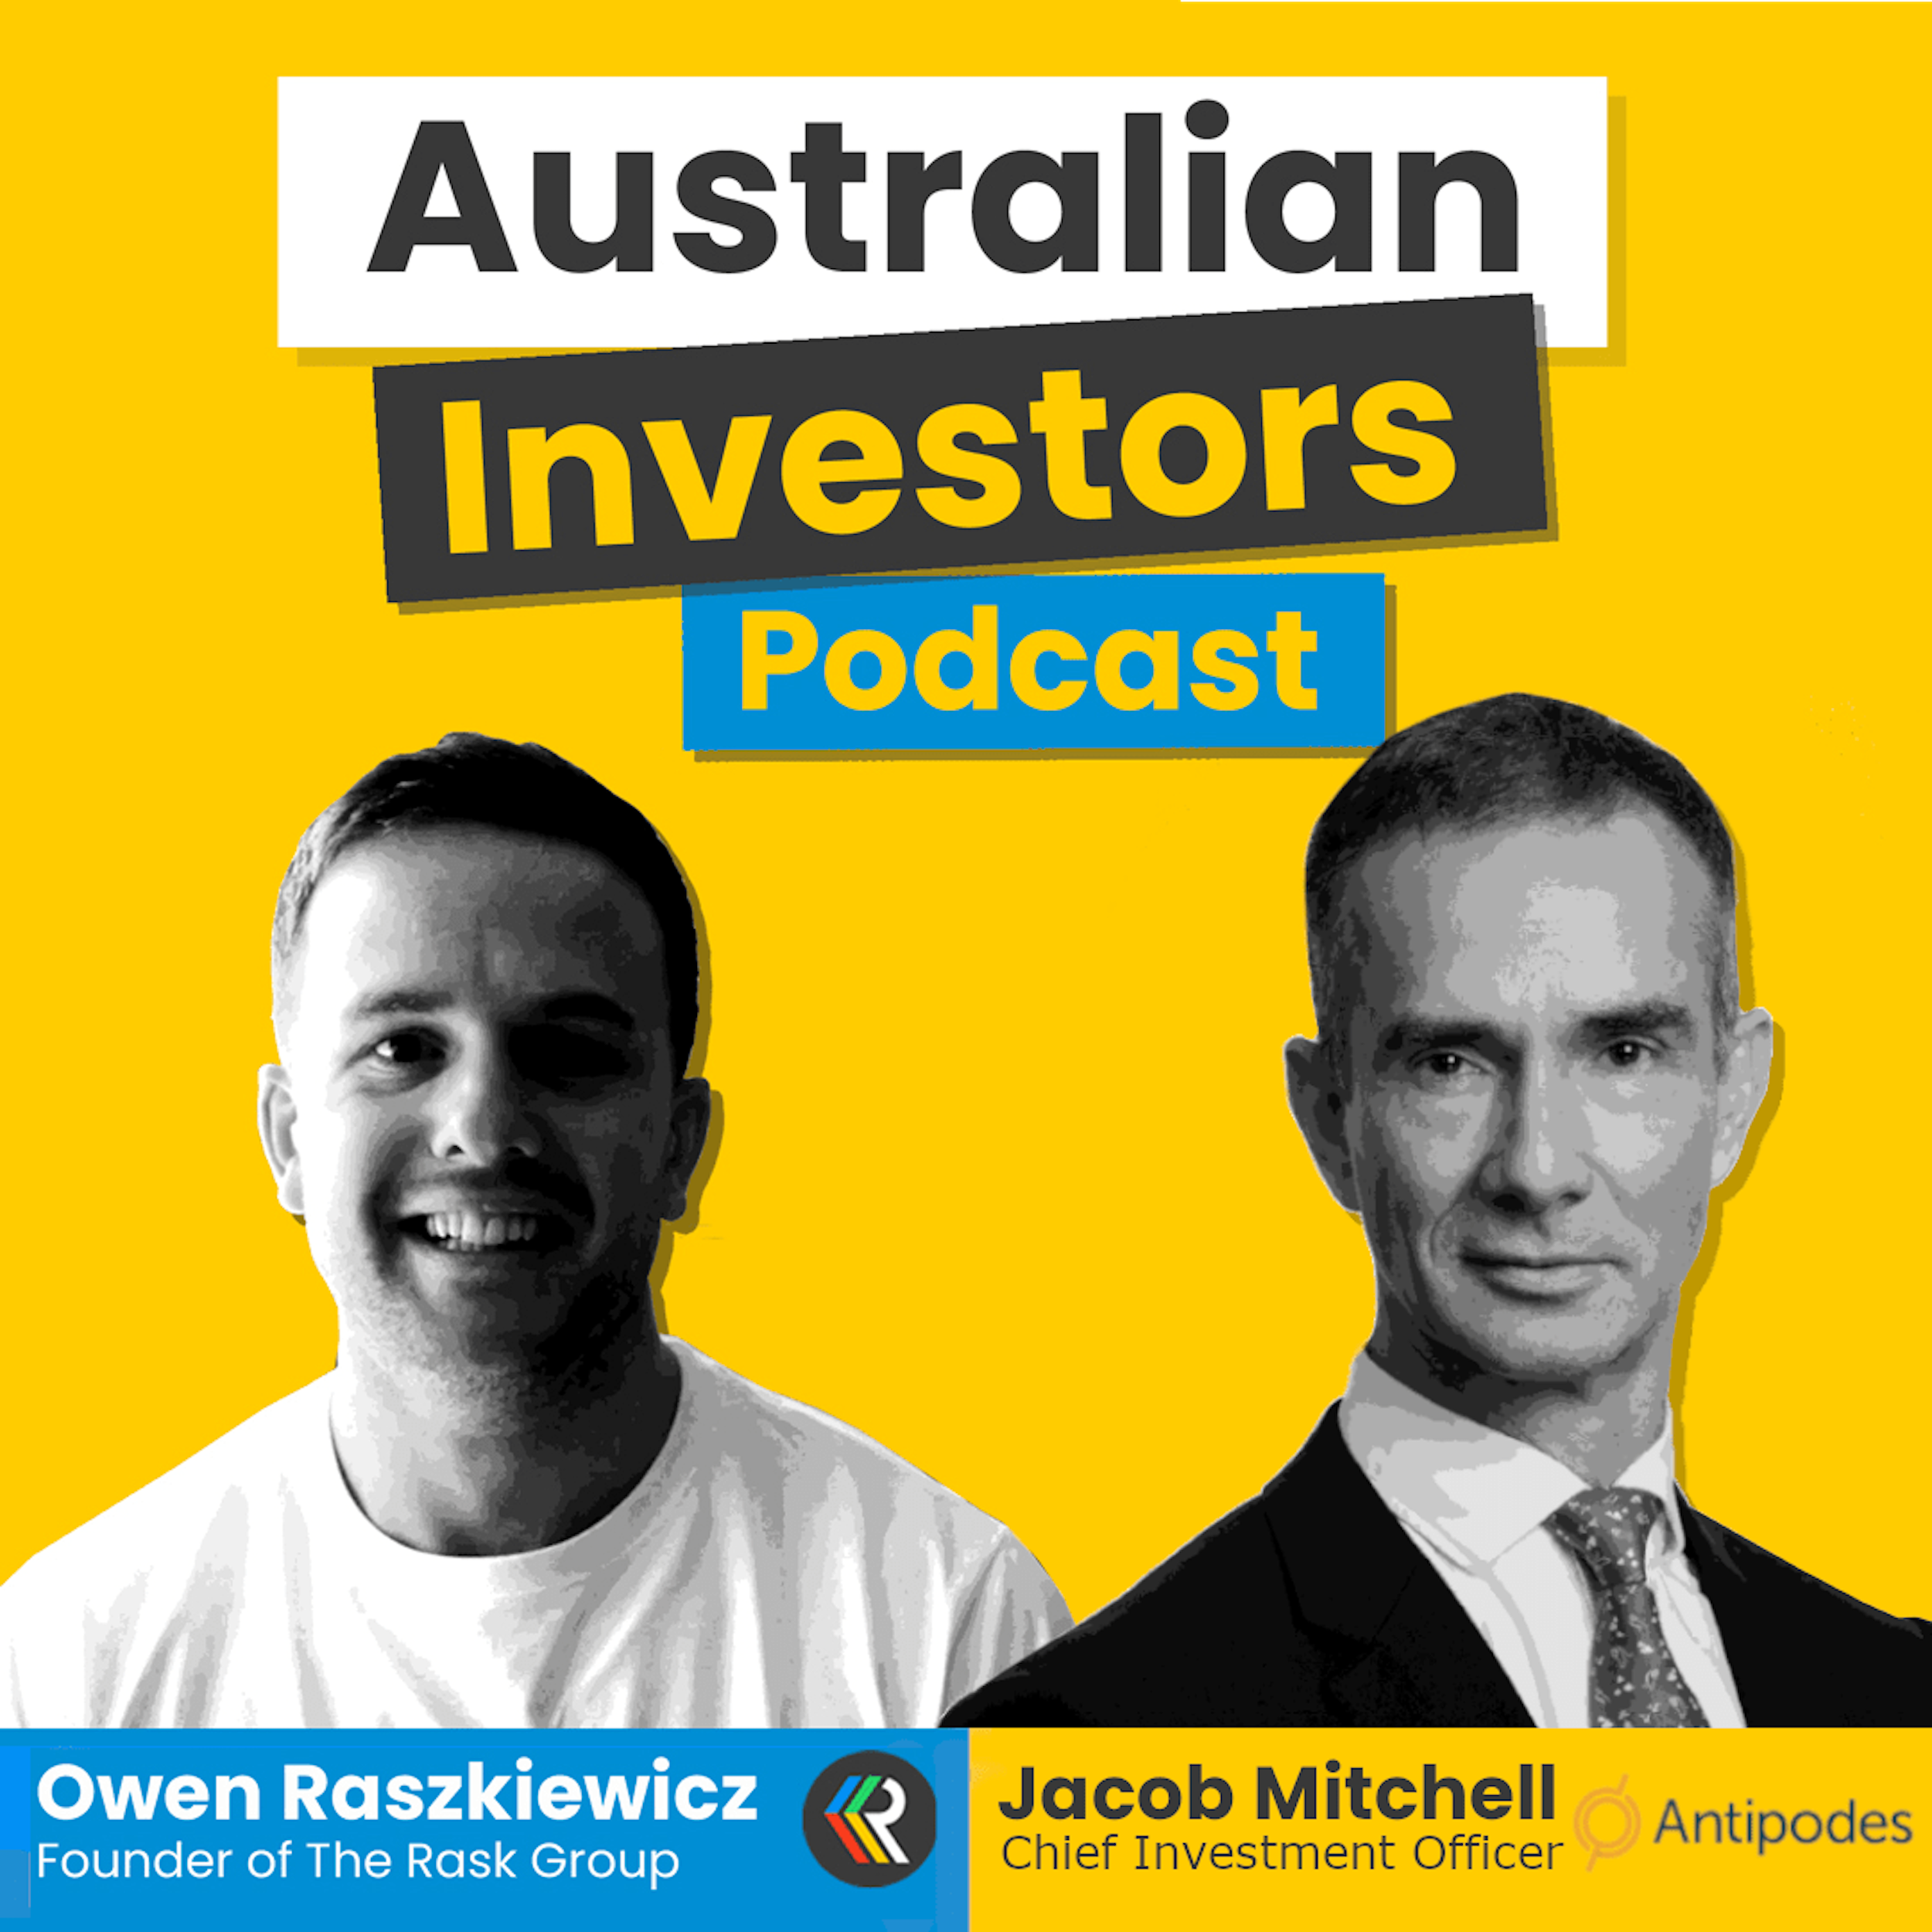 #31 - Jacob Mitchell - Antipodes Partners